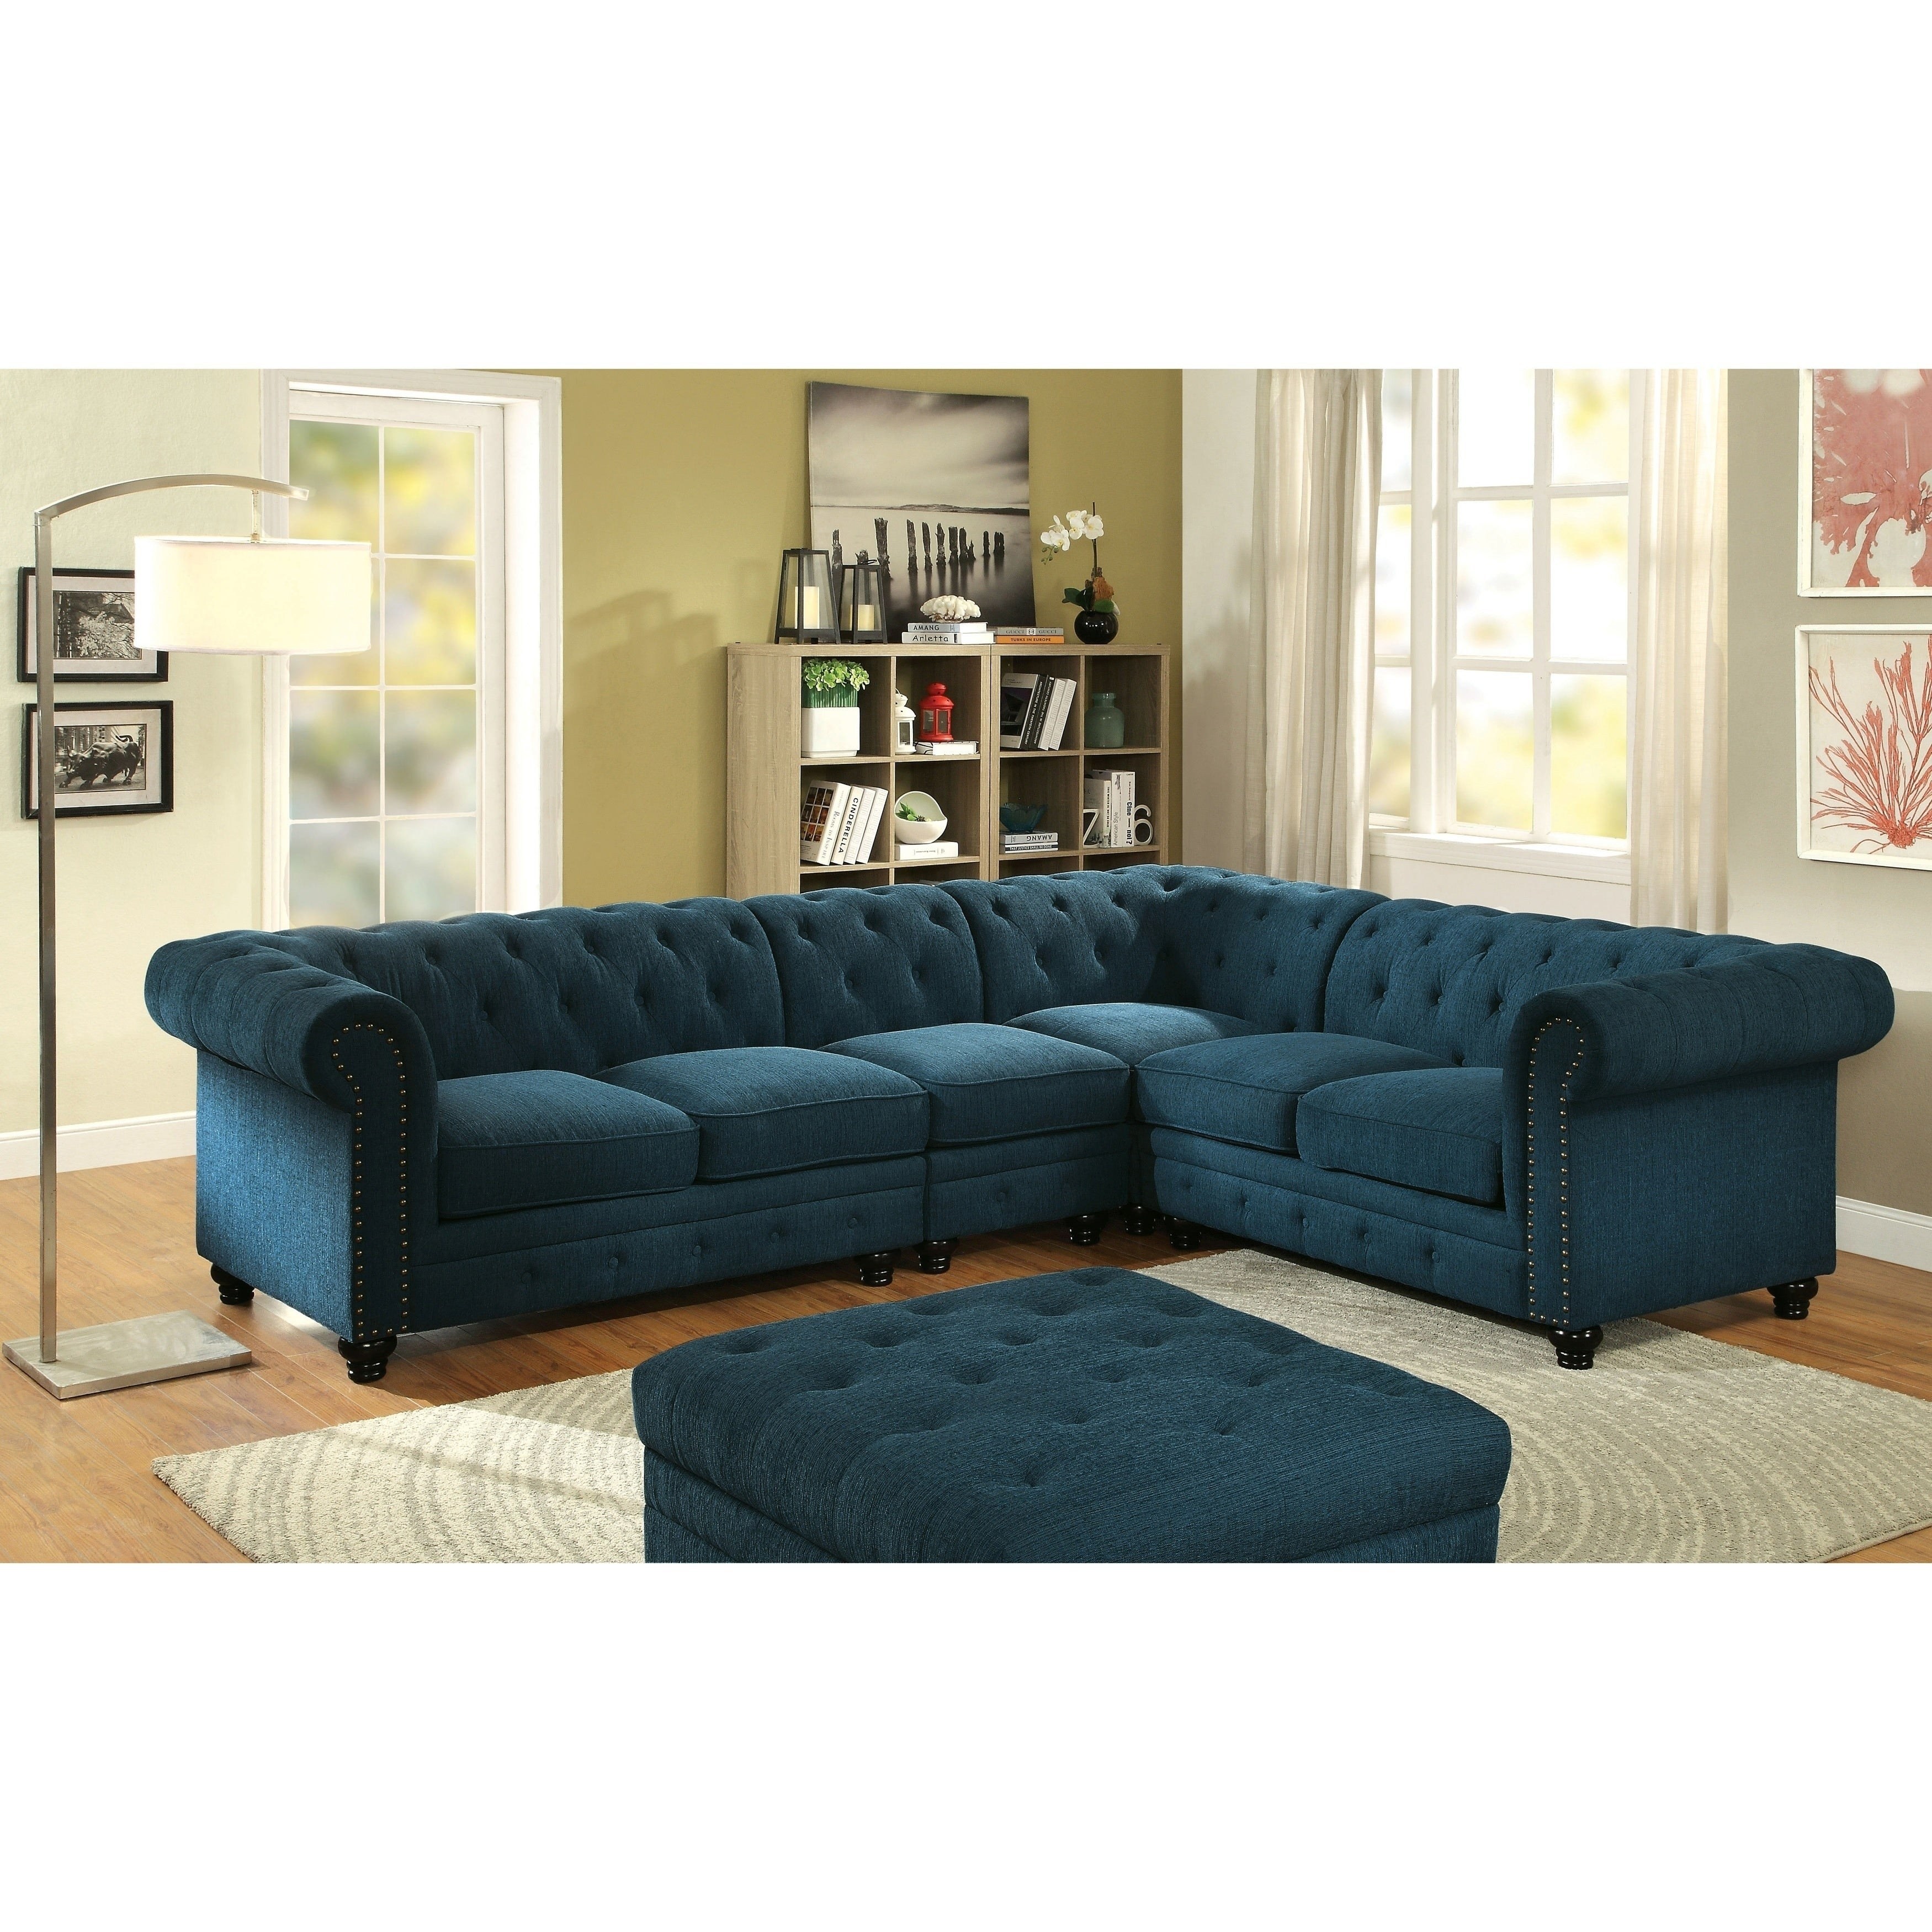 386277324261 Shop Sylvana Traditional Tufted 2-Piece Sectional and Chair Set by FOA - On  Sale - Free Shipping Today - Overstock - 15807048